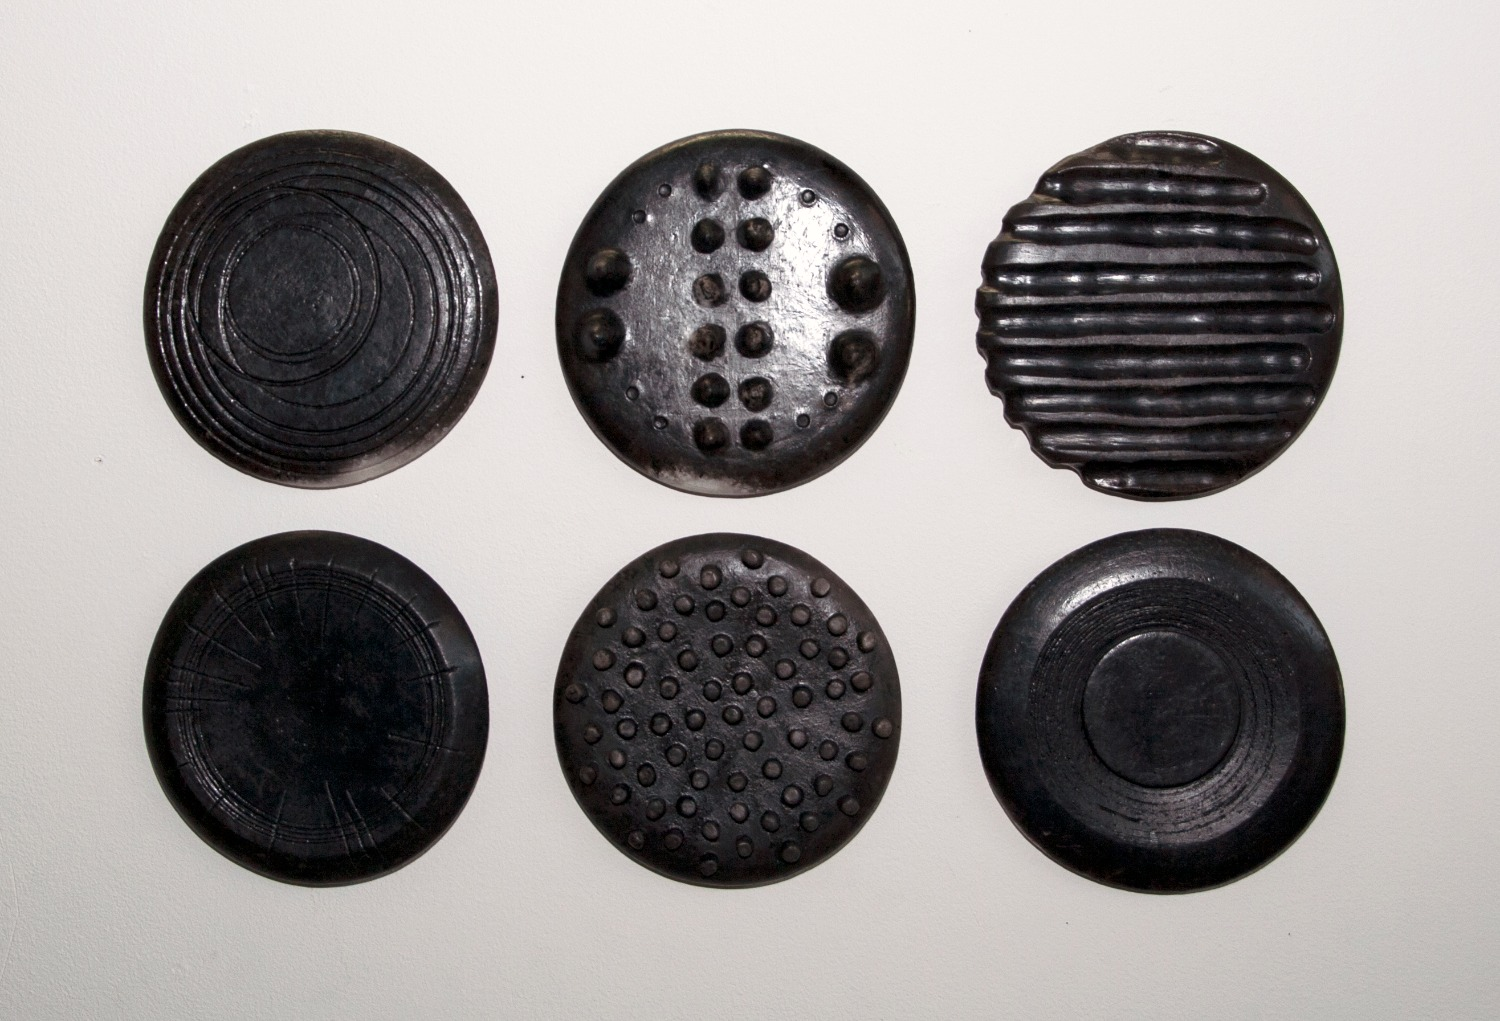 small carbonised discs